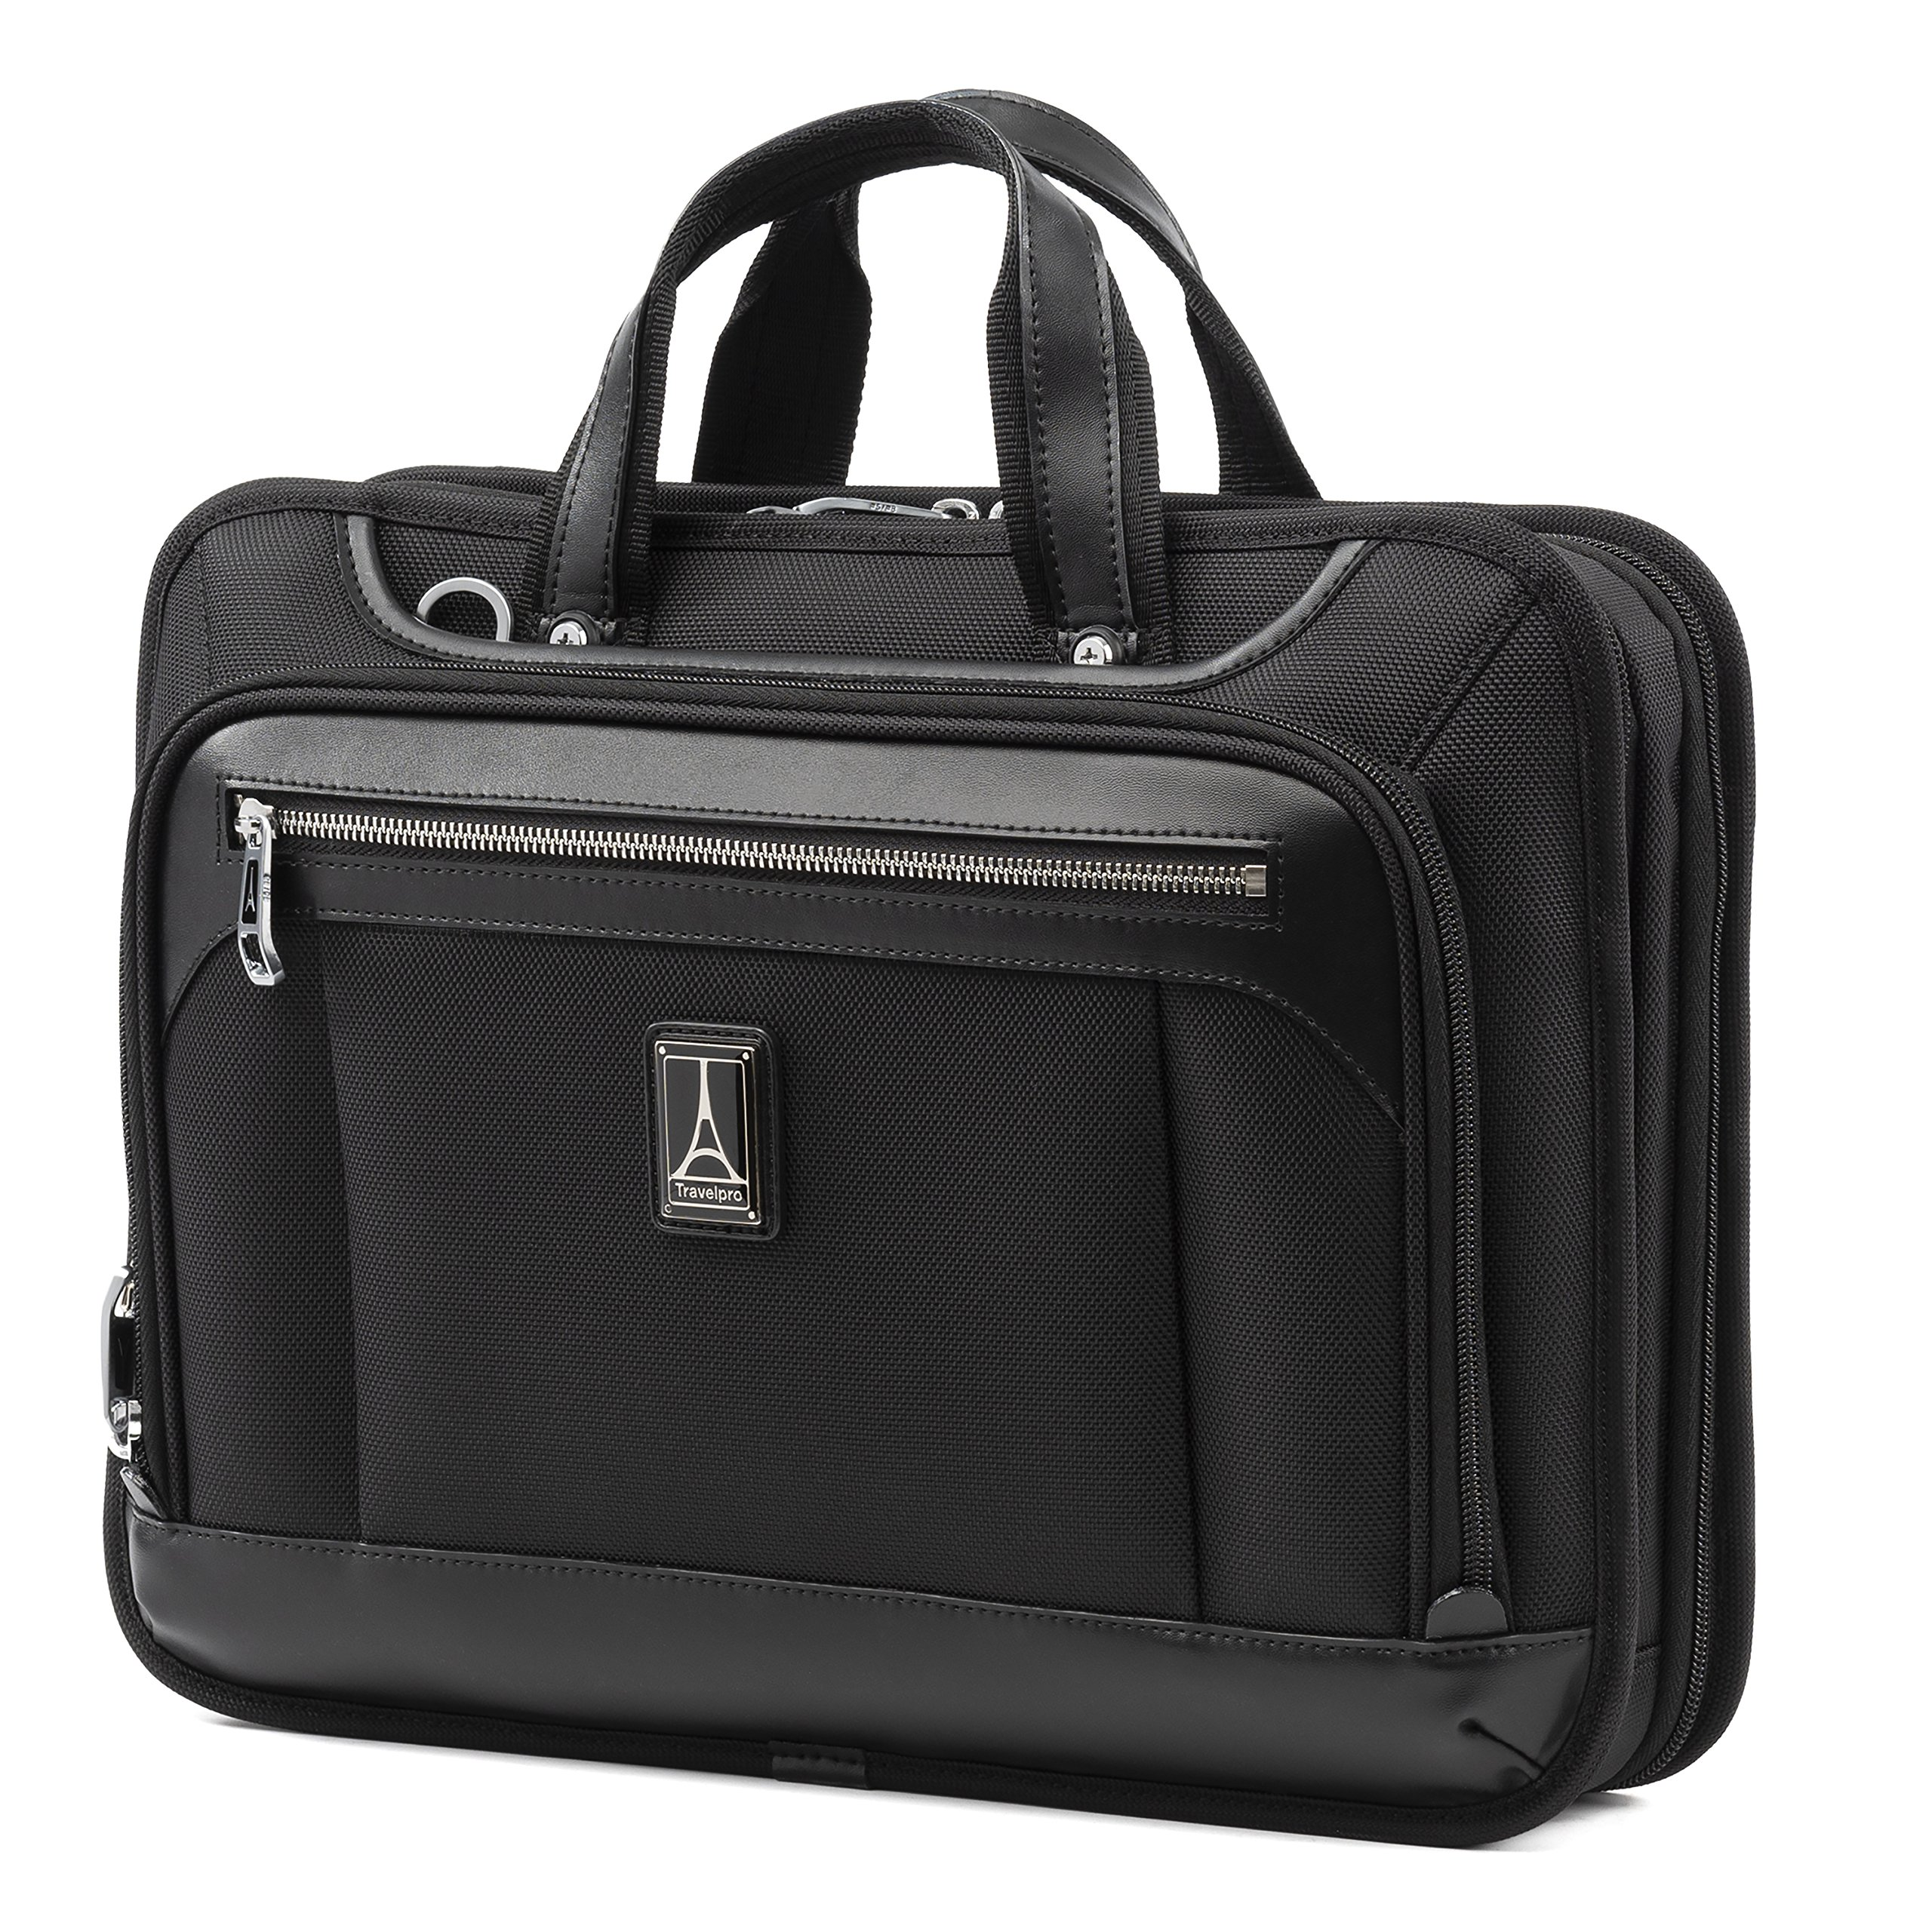 Travelpro Luggage Platinum Elite 16'' Carry-on Slim Business Computer Briefcase, Shadow Black, One Size